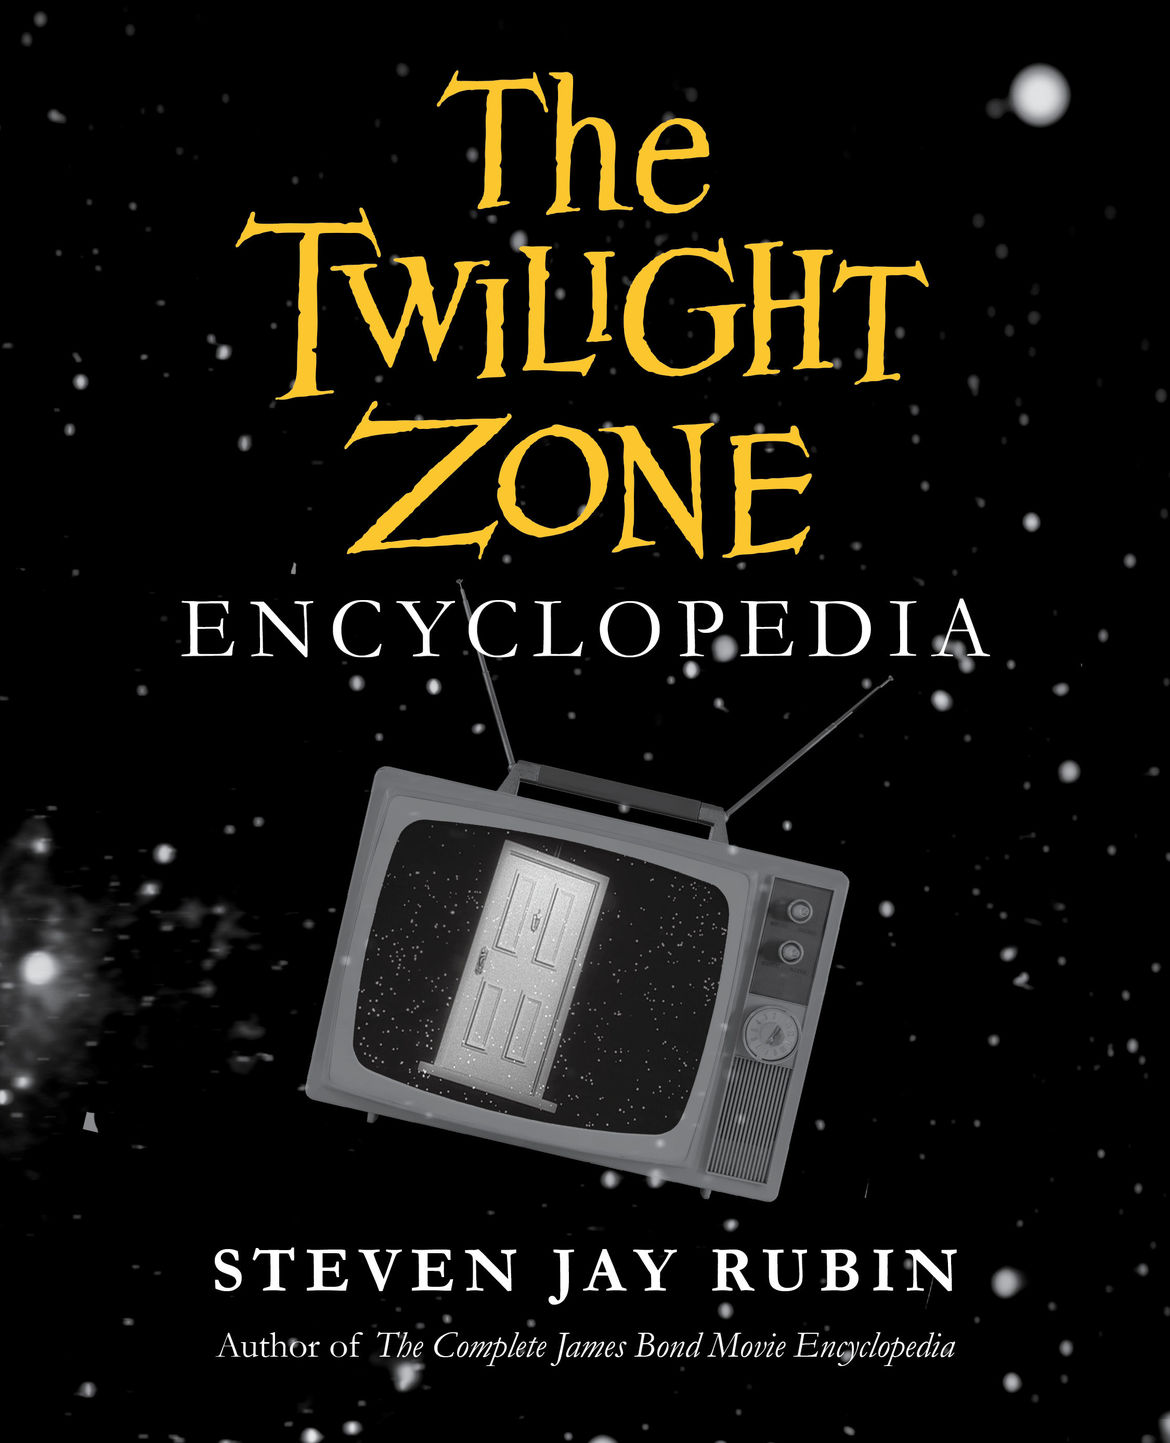 Twilight Zone Encyclopedia, The